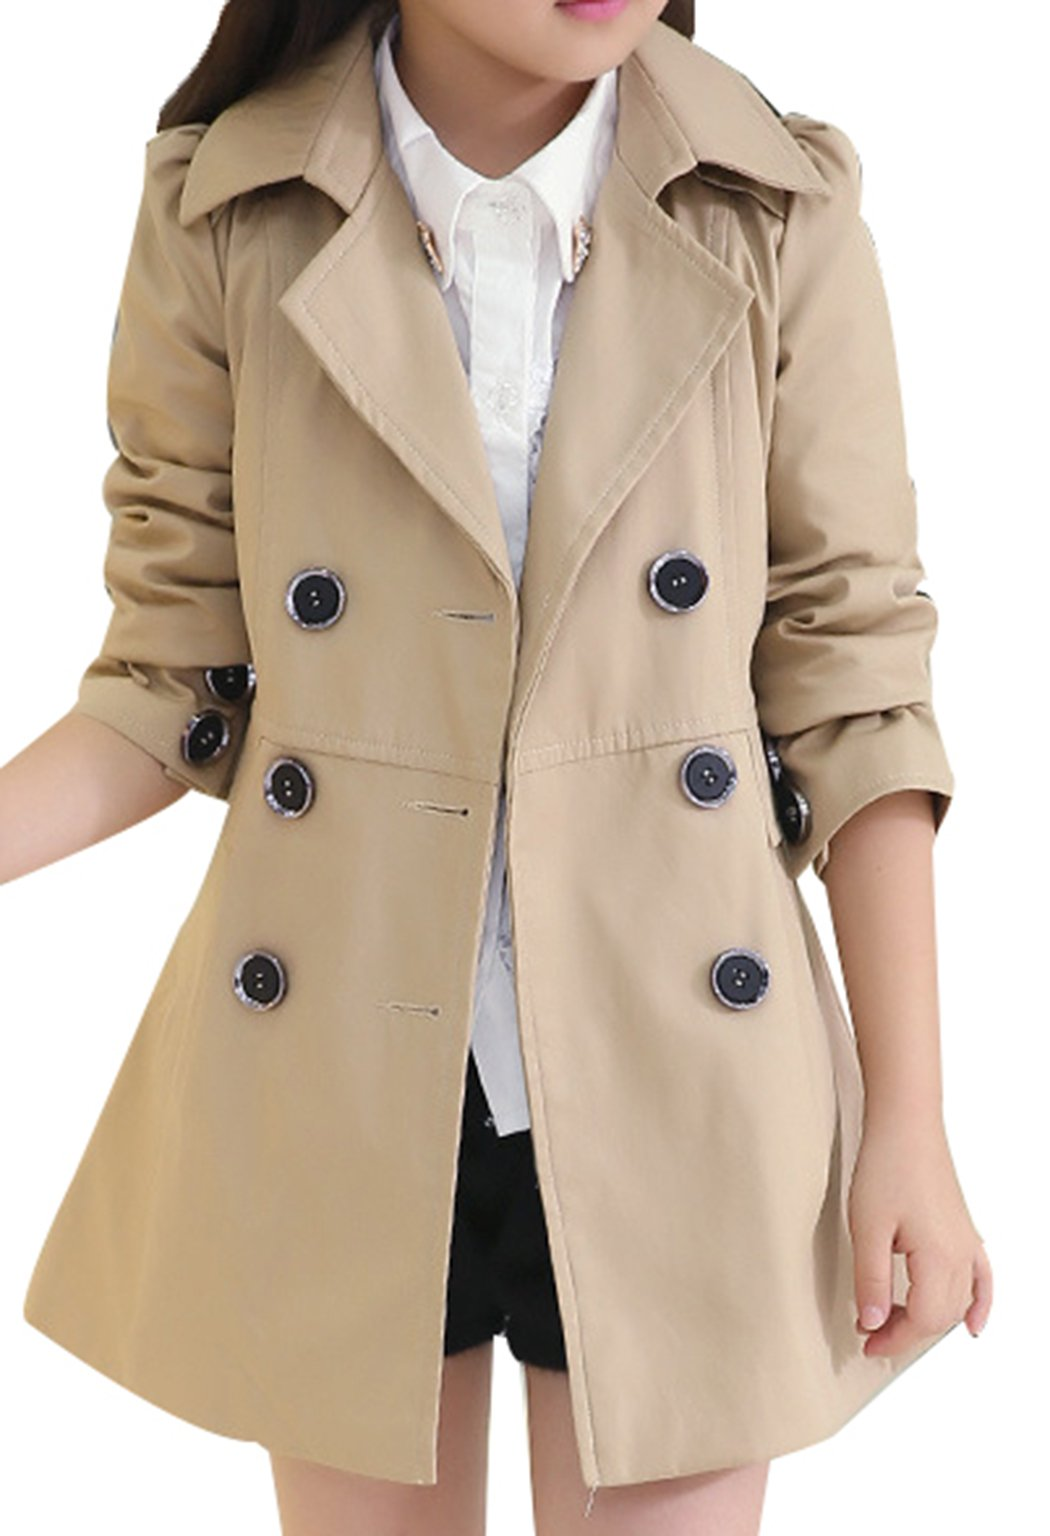 JiaYou Girl Child Kid Lapel Double Breasted Outwear Pea Trench Coat(Brown,height 47-51Inches)